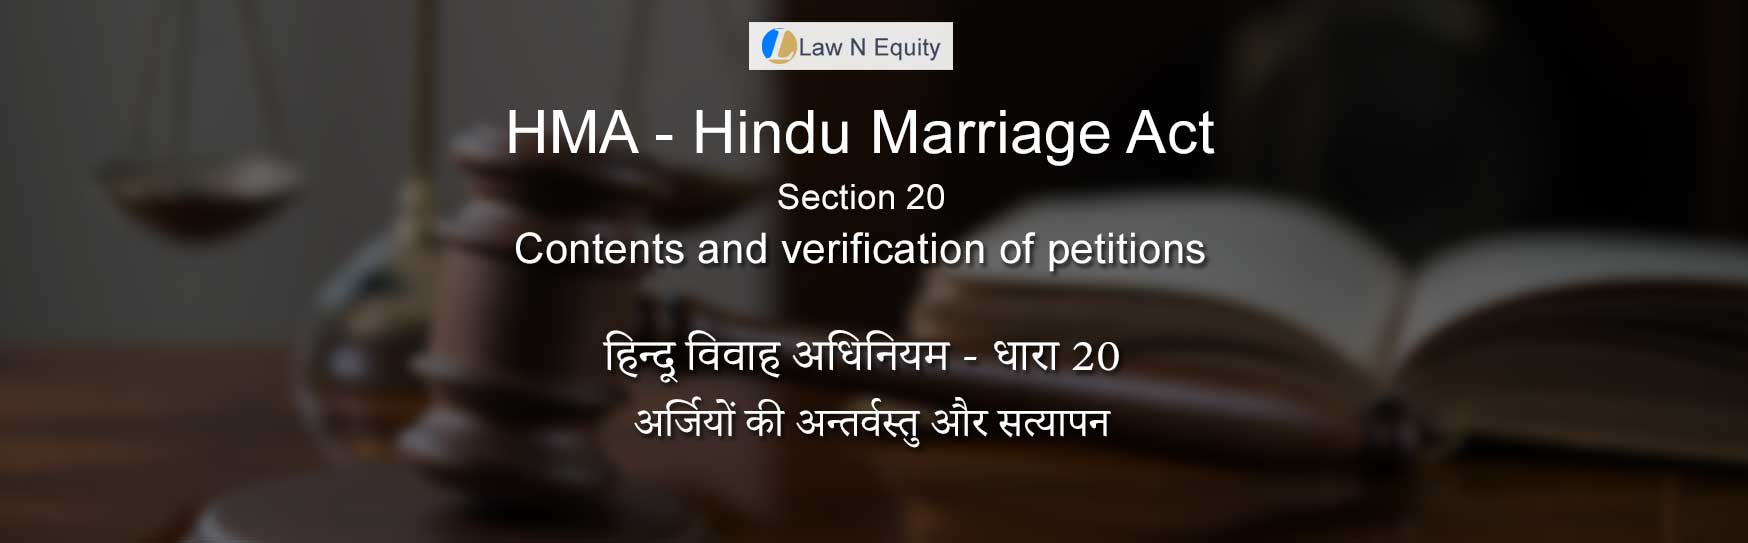 Hindu Marriage Act(HMA) Section 20